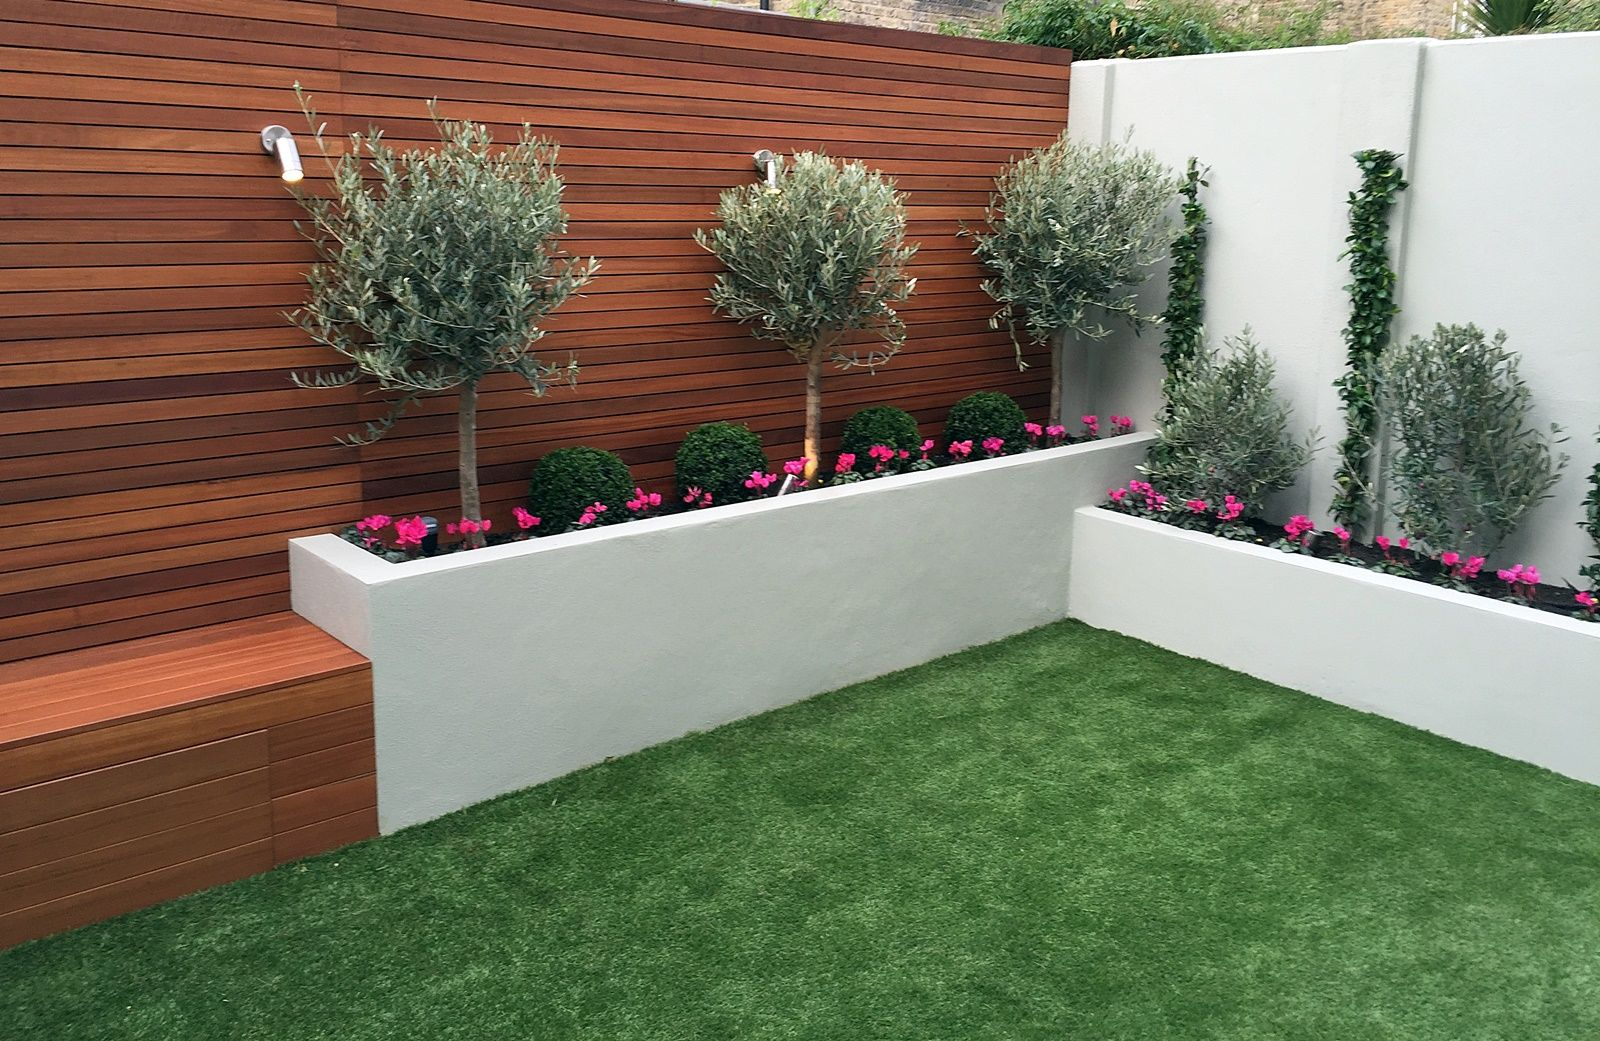 Simple garden designs pictures for Low maintenance lawn design